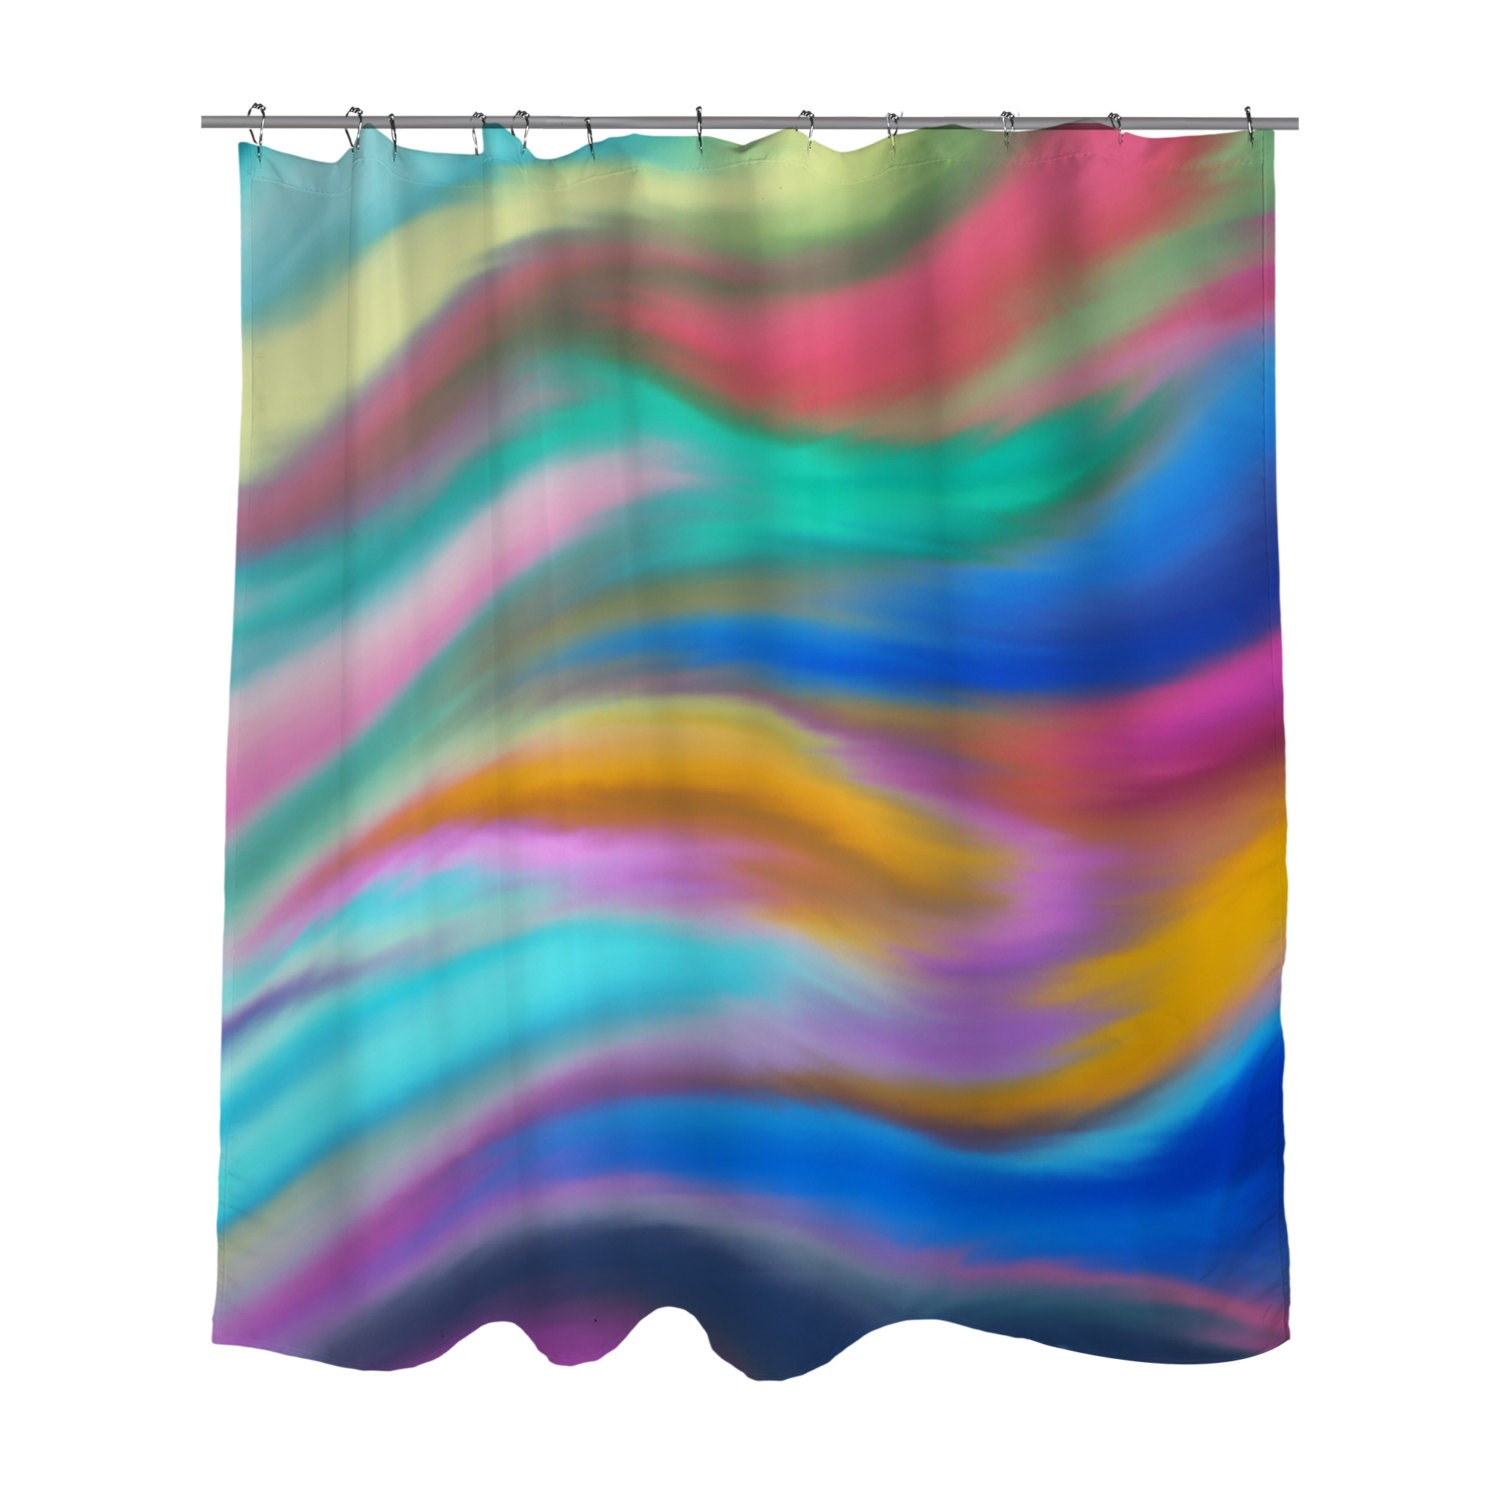 Shower Curtain Watercolor Multi Colored Bright Abstract